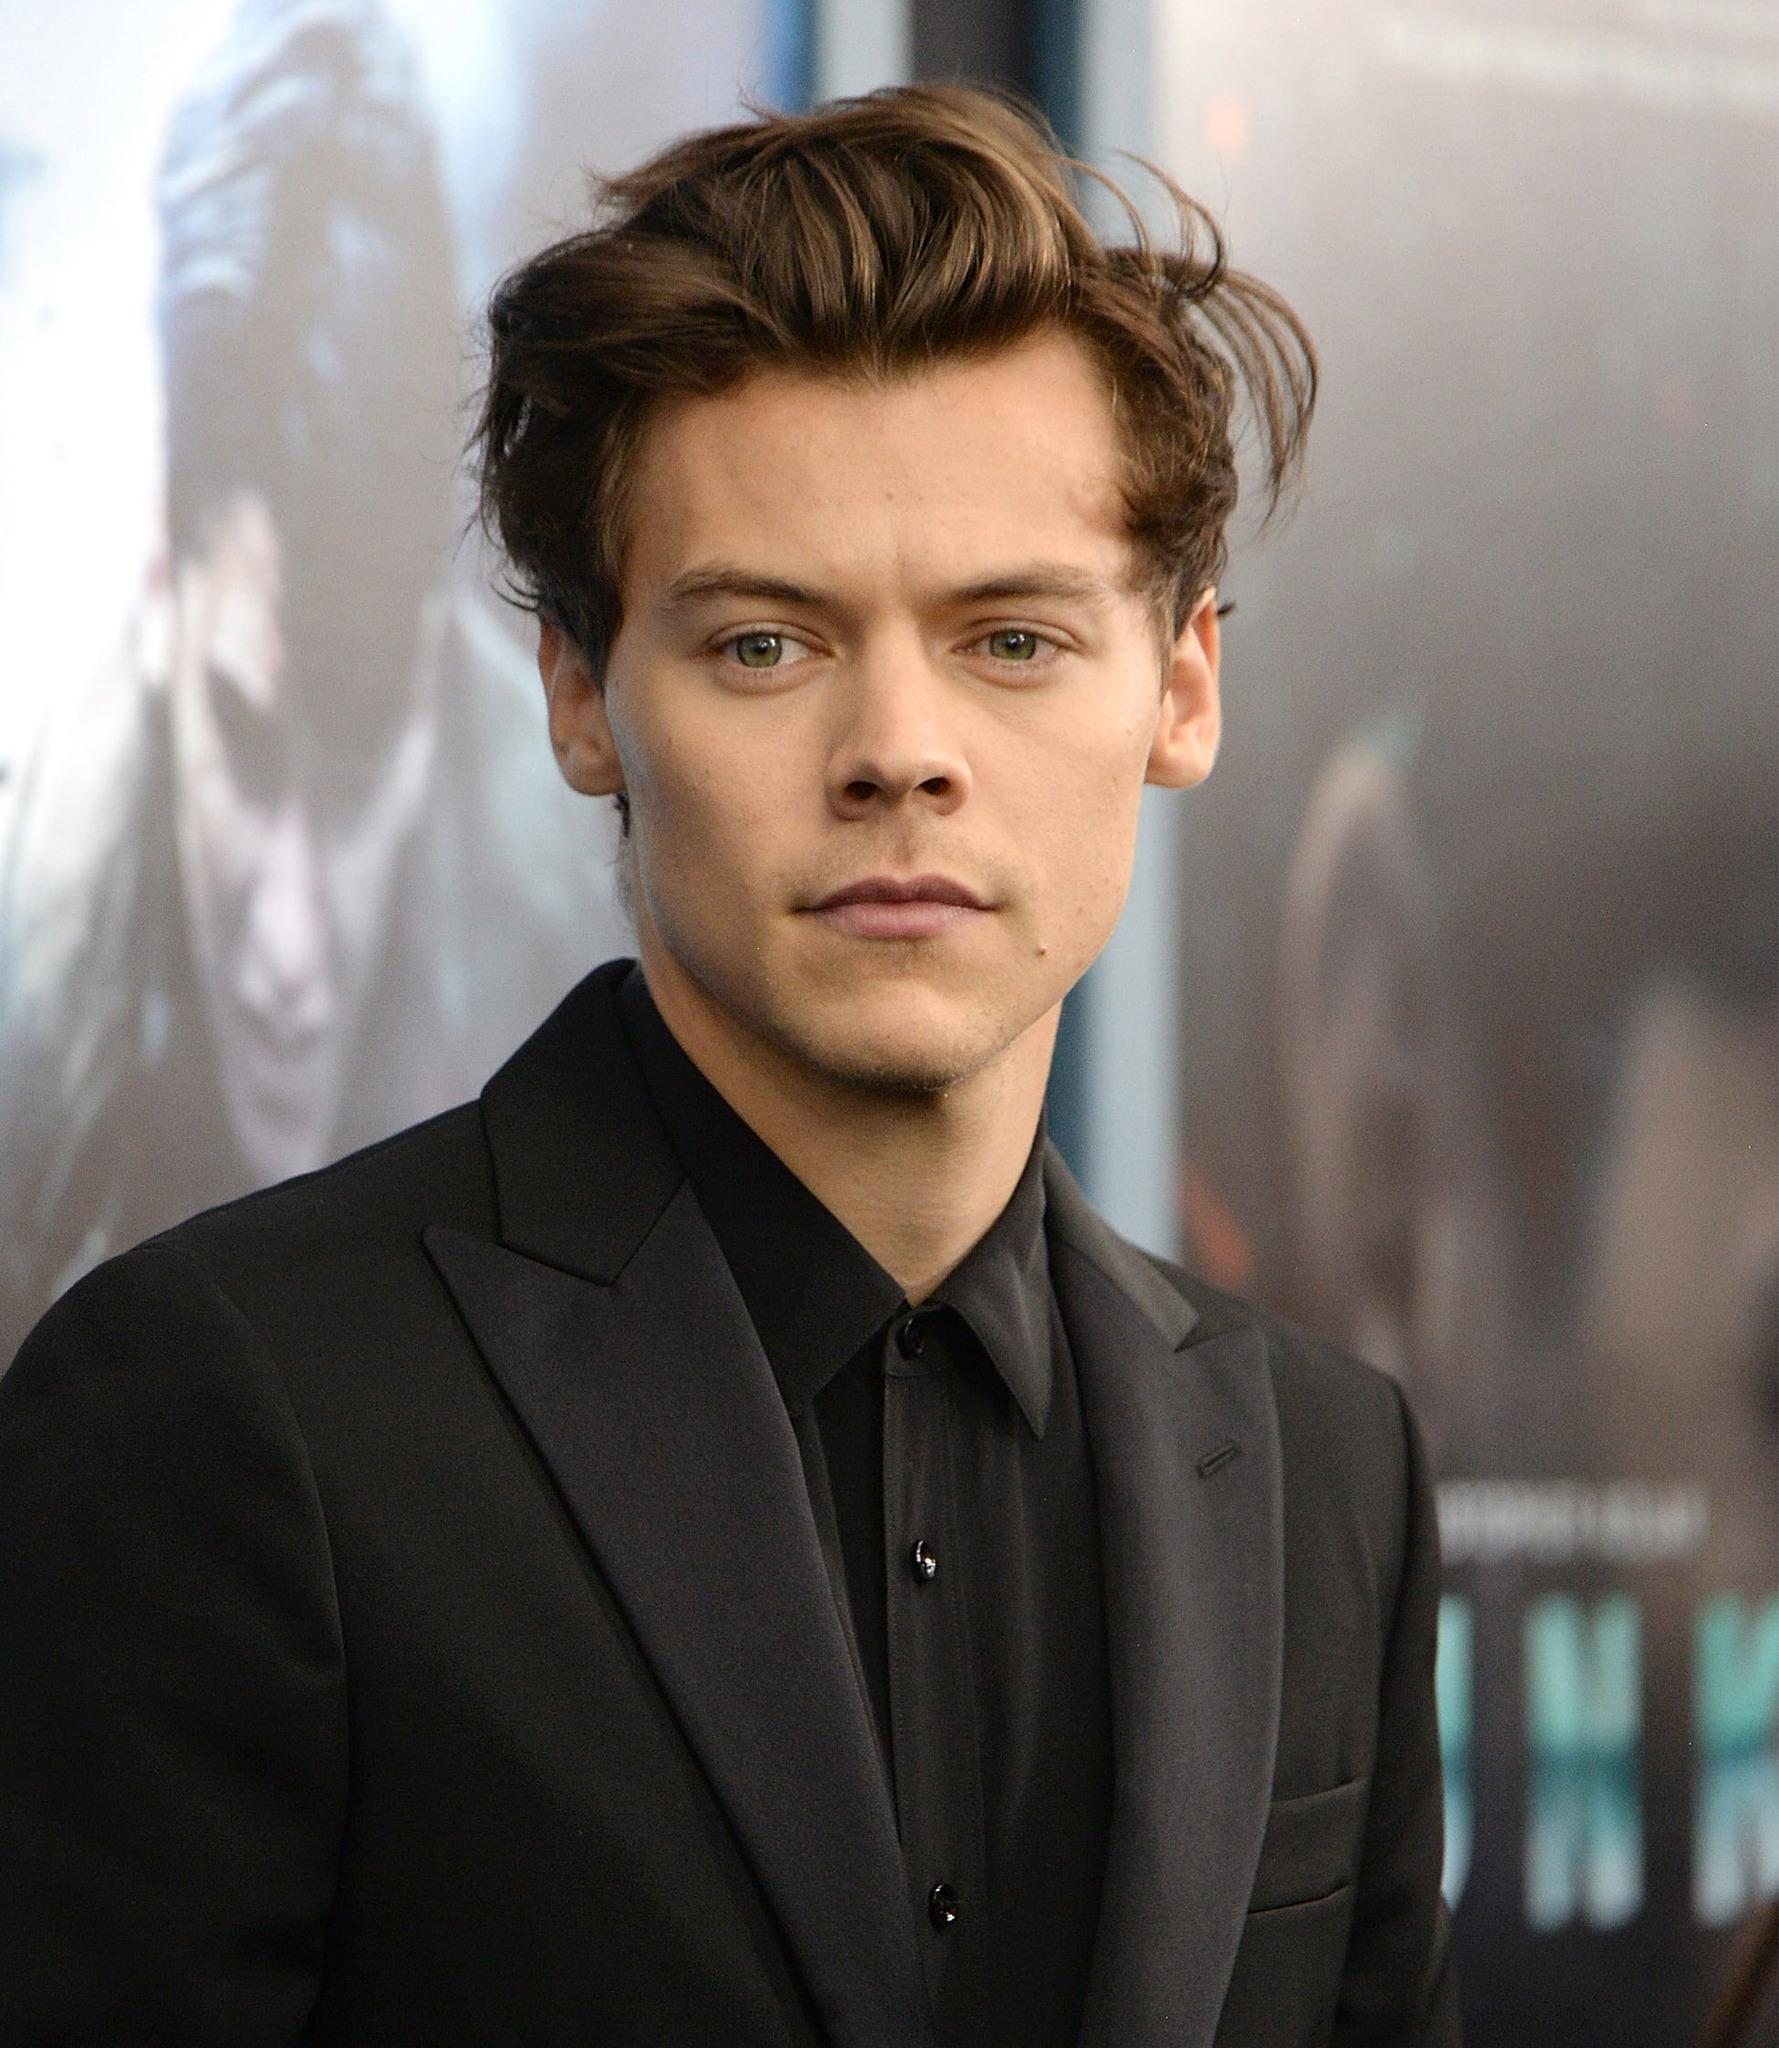 Harry Styles' Odds Increase To Play The Next James Bond